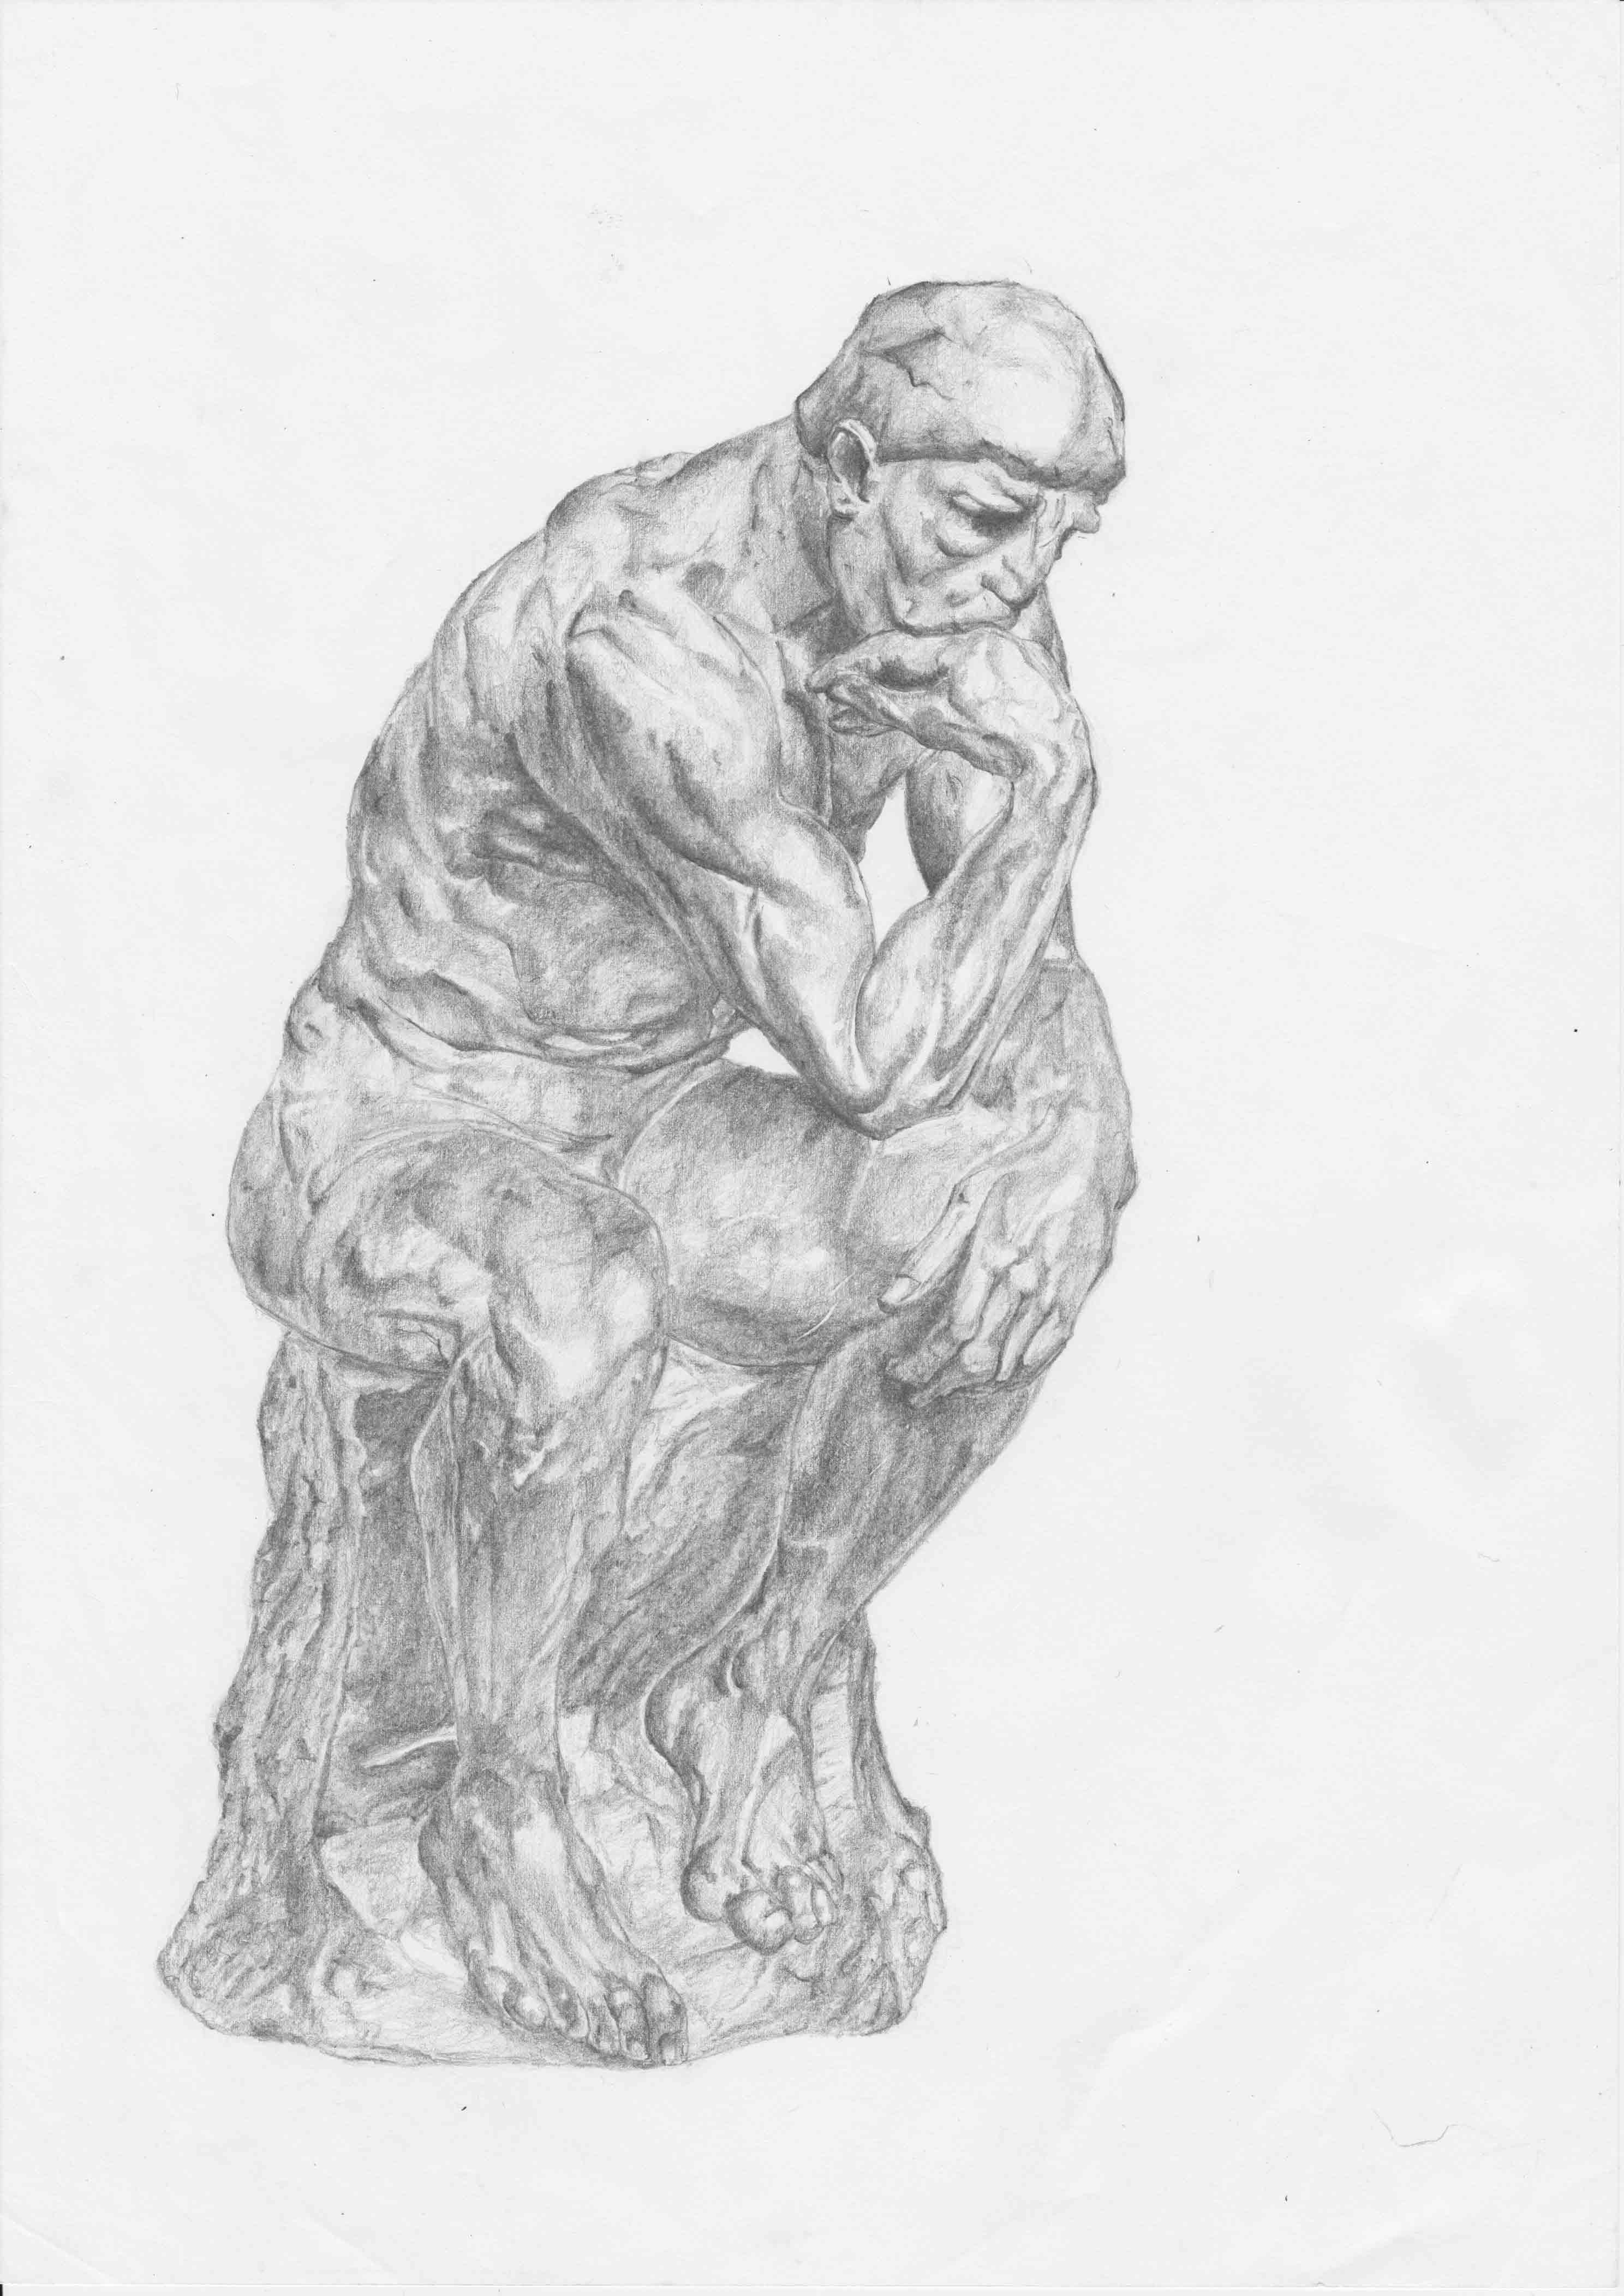 Rodin's 'The Thinker' - Rendered